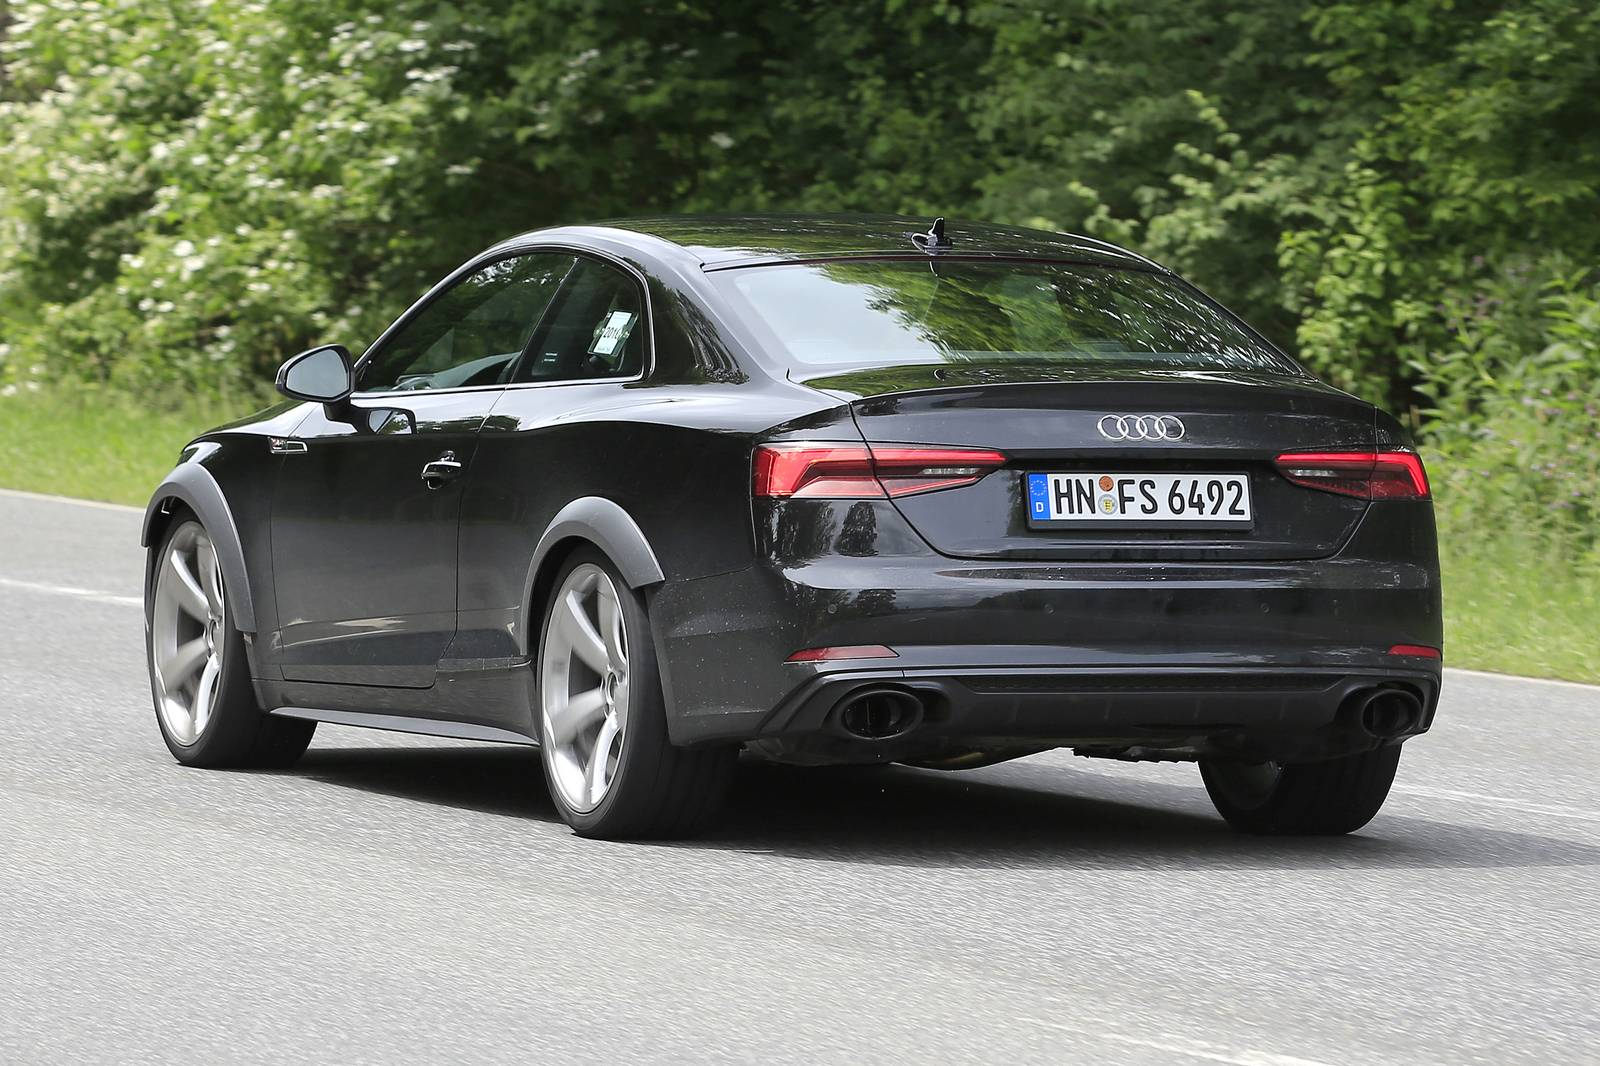 2018 Audi RS5 Test Mule Spy Shots - GTspirit